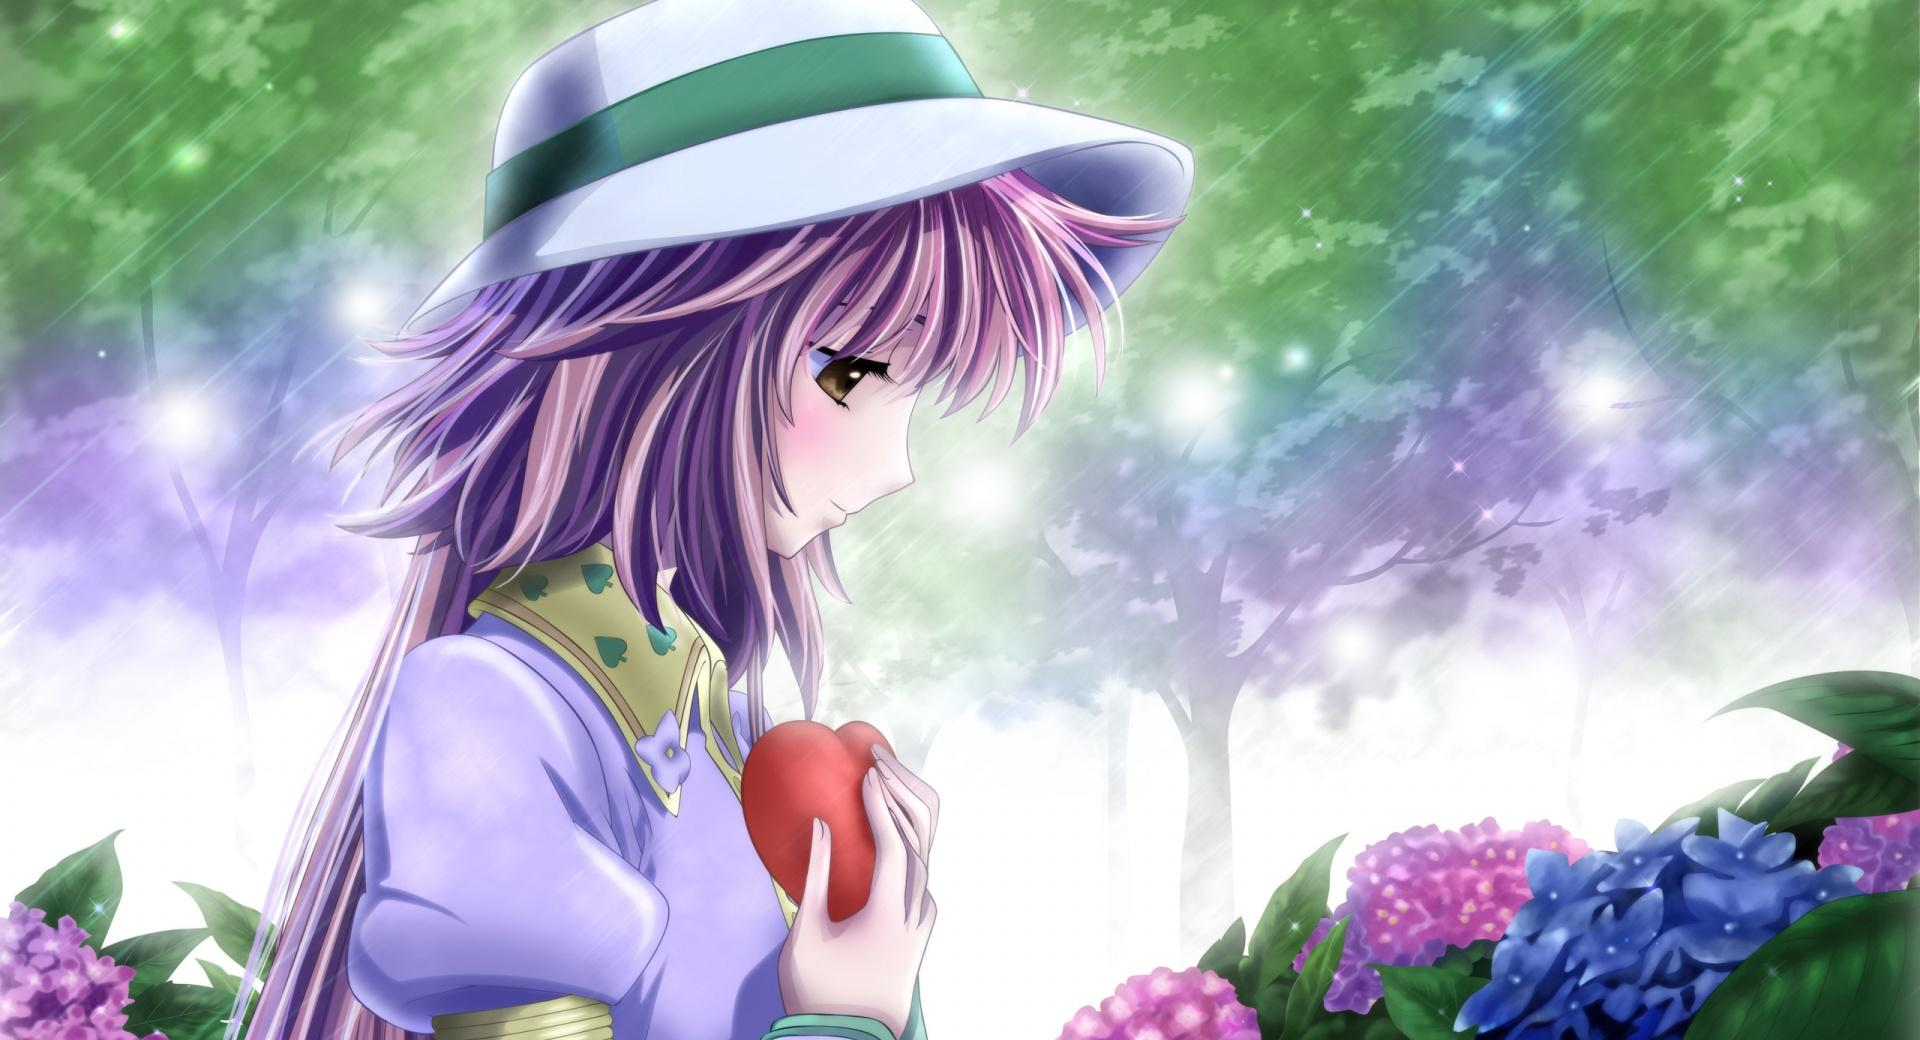 In Love Anime wallpapers HD quality